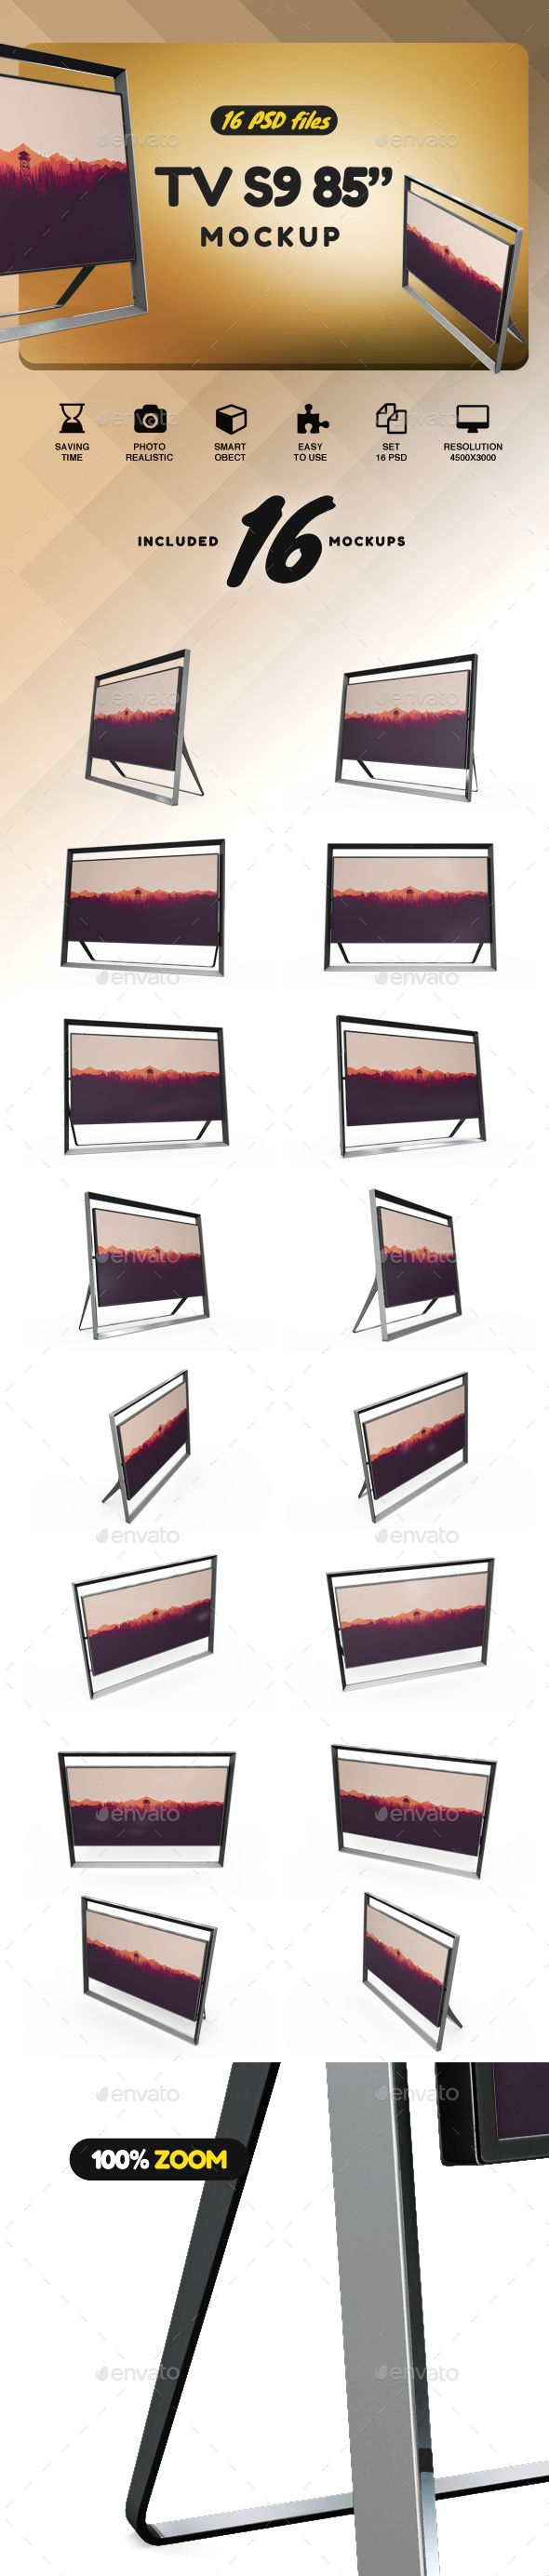 "85"" Smart Tv #Mockup - TV Displays"